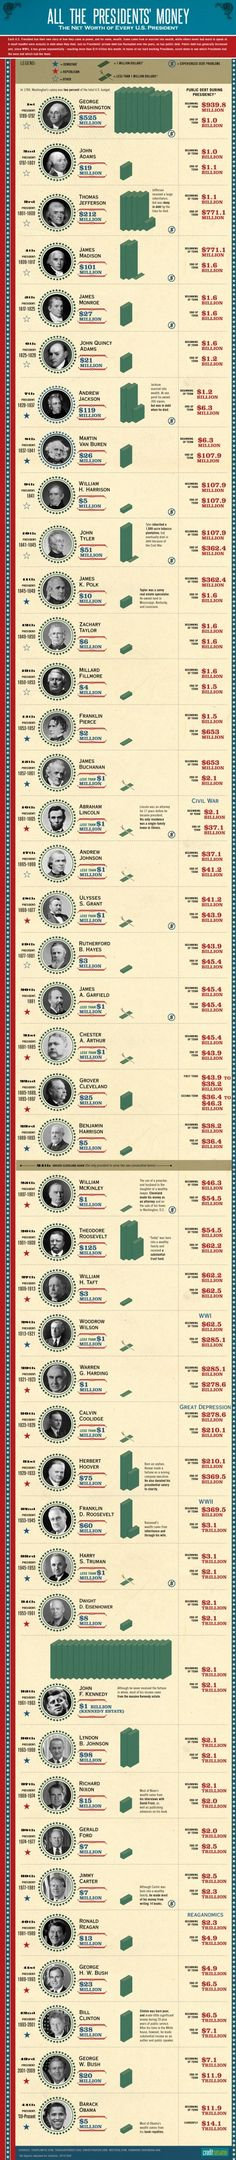 All the Presidents' Money: